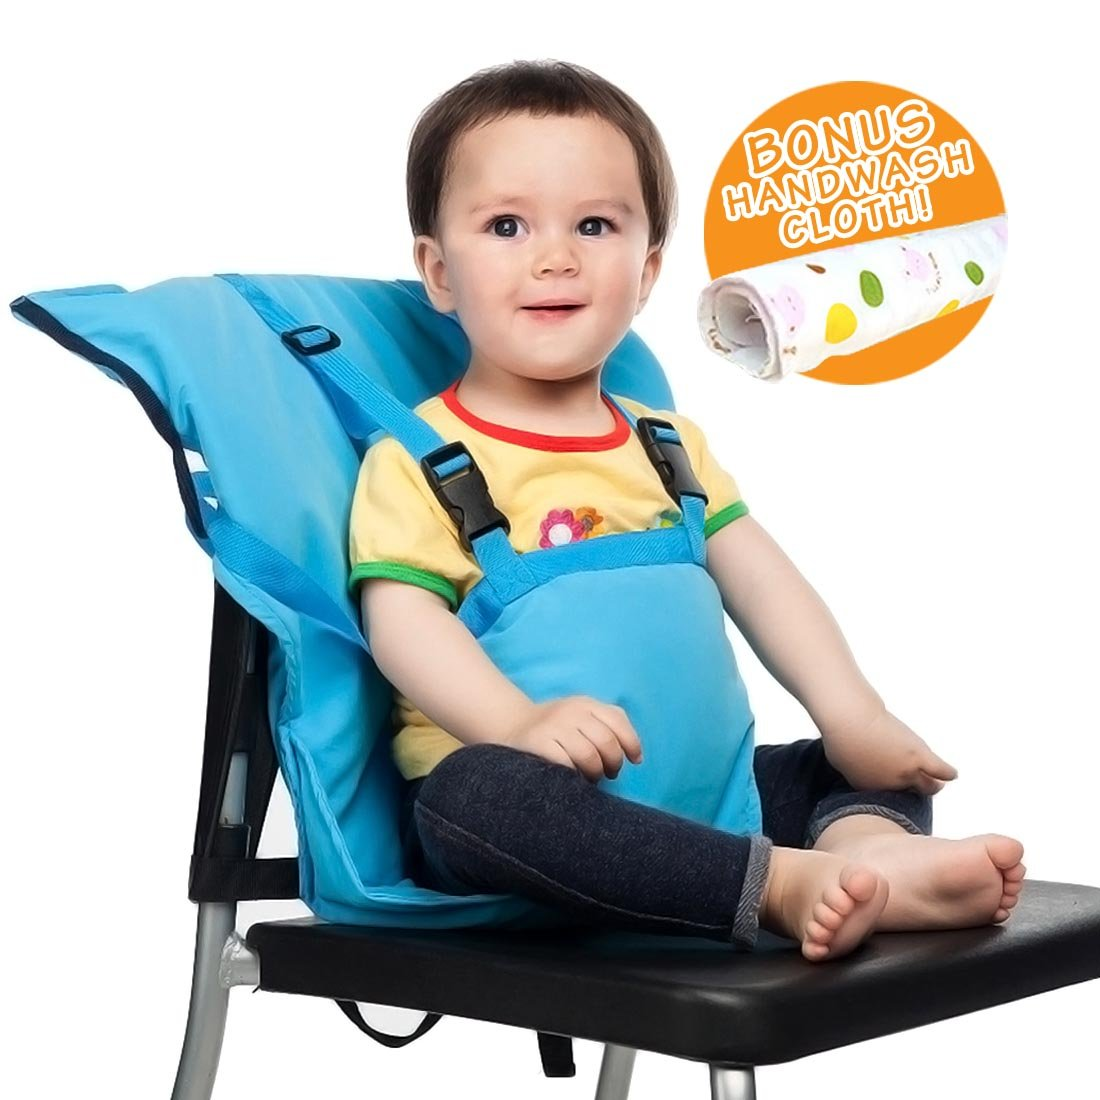 cloth portable high chair configura accessories cheap baby feeding find get quotations travel booster safety seat harness cover sack cushion bag kid